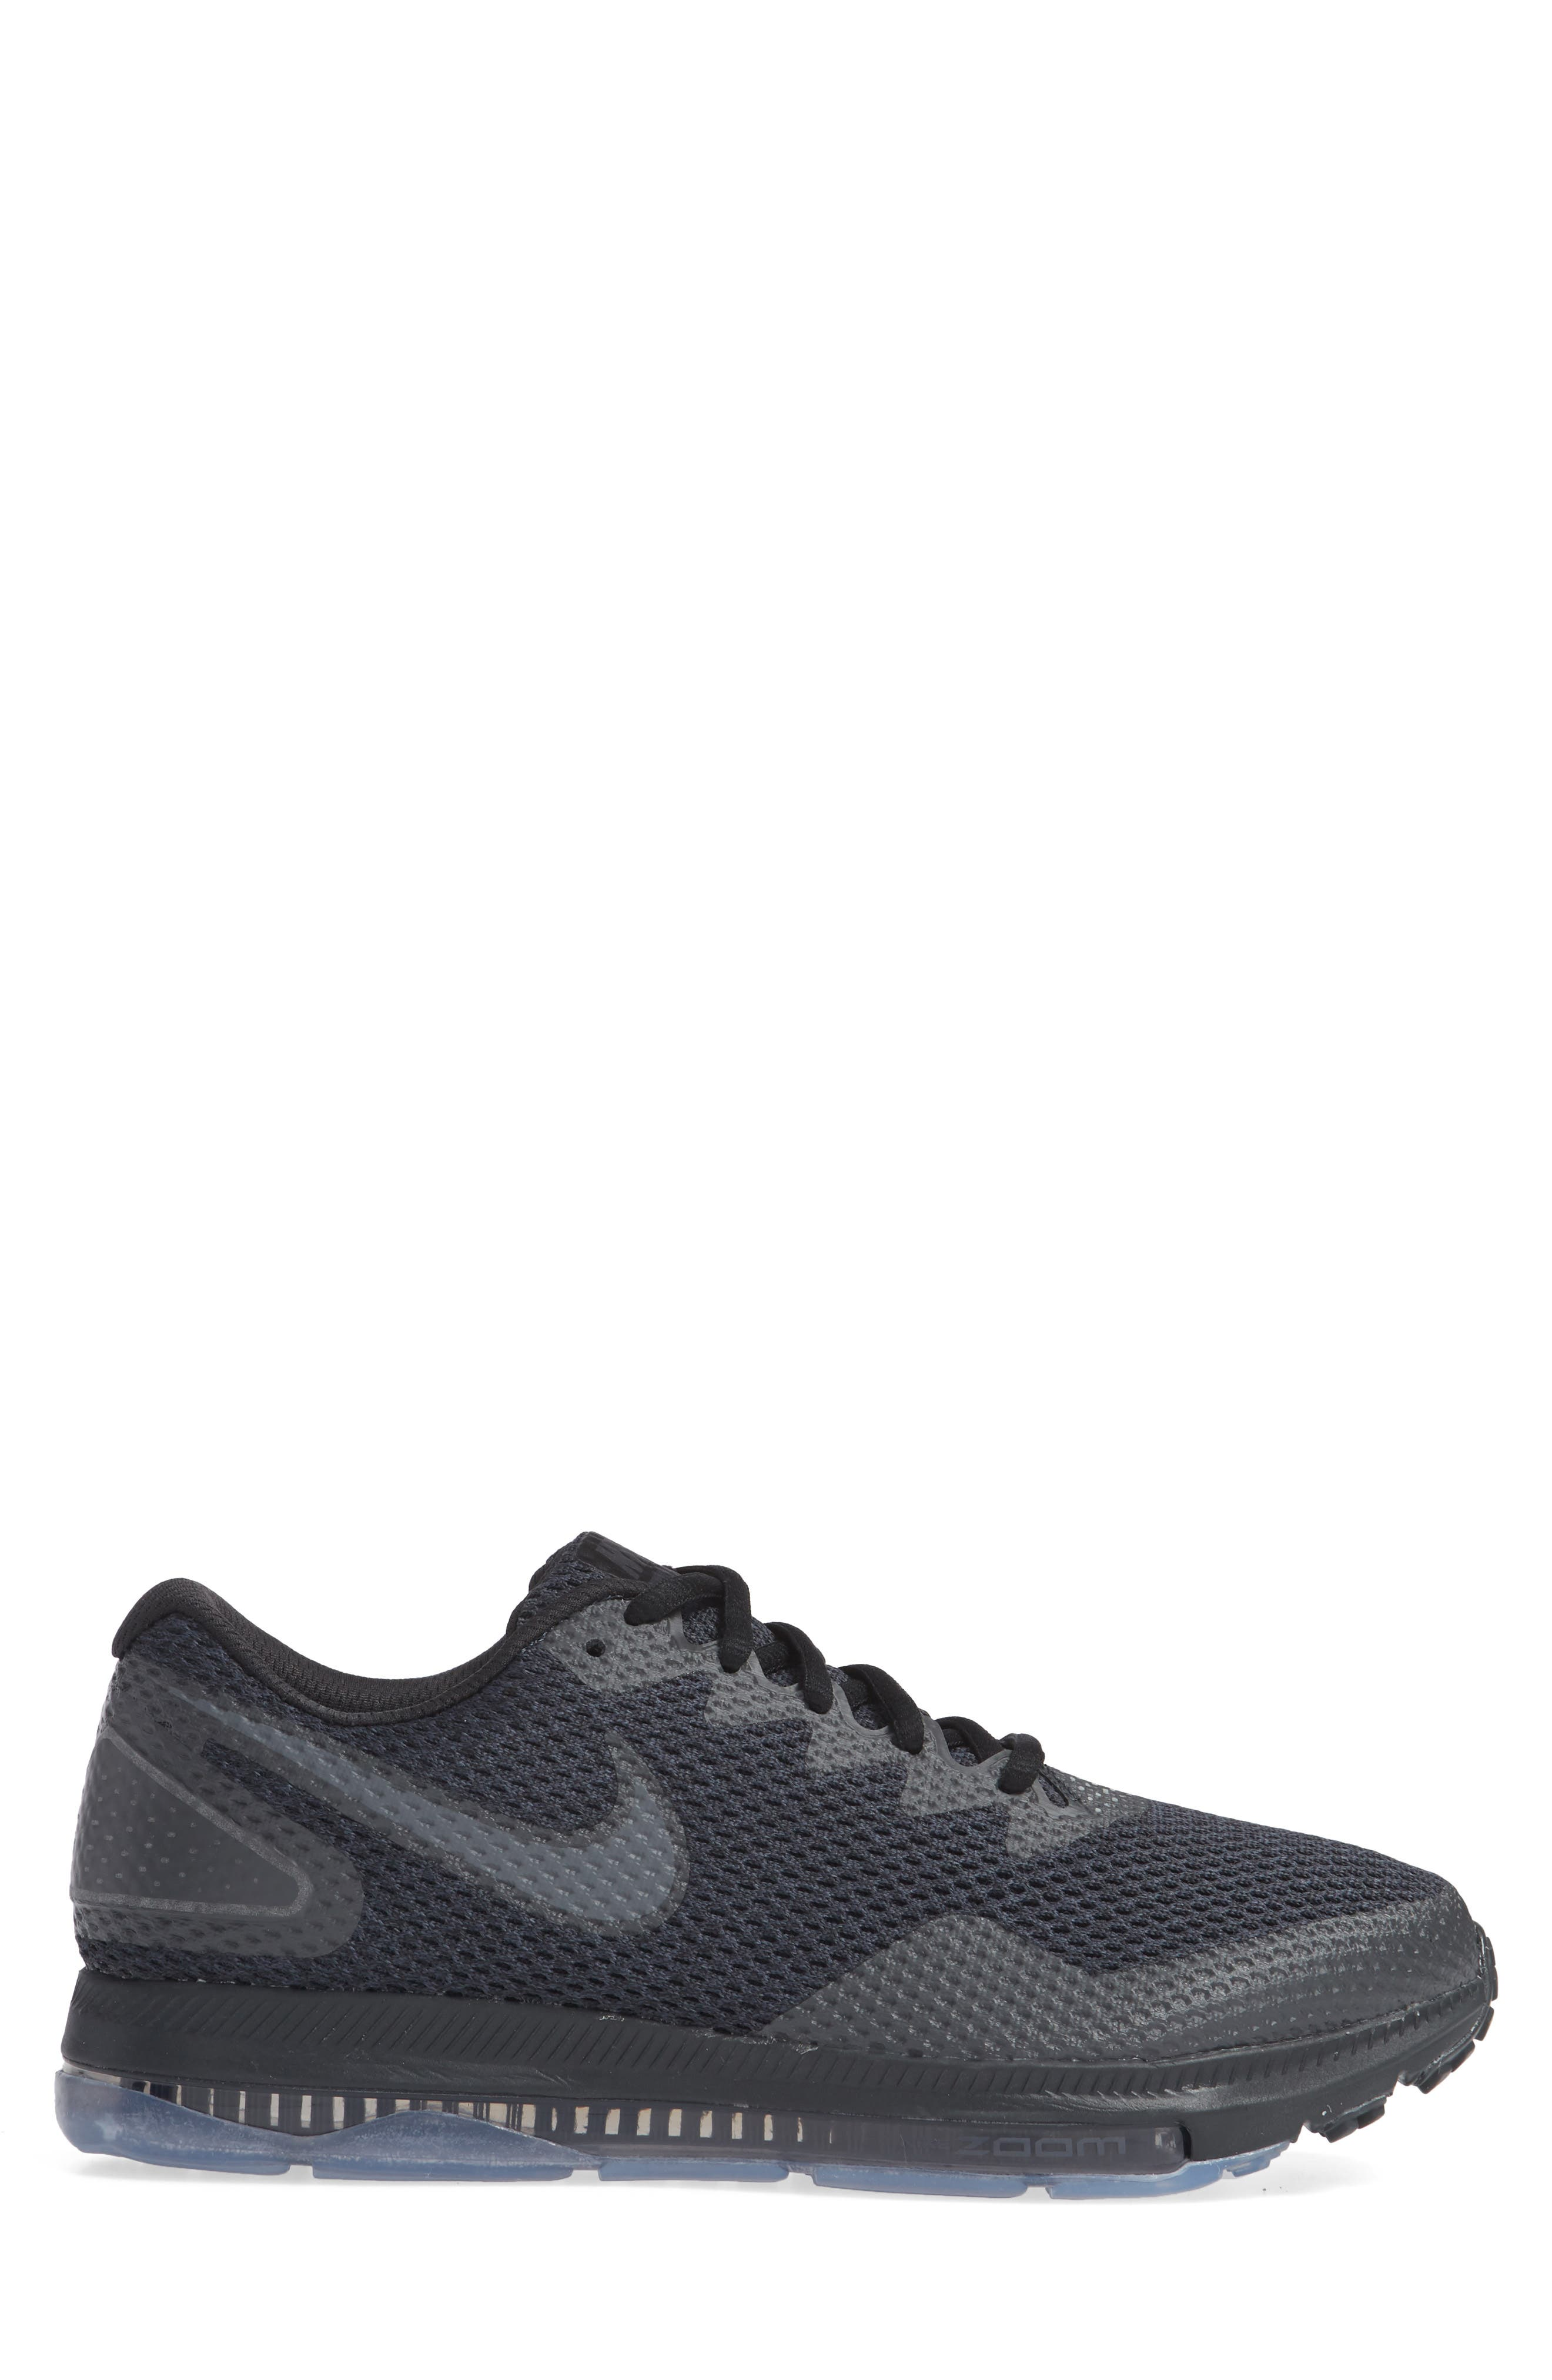 Zoom All Out Low 2 Running Shoe,                             Alternate thumbnail 4, color,                             Black/ Dark Grey/ Anthracite